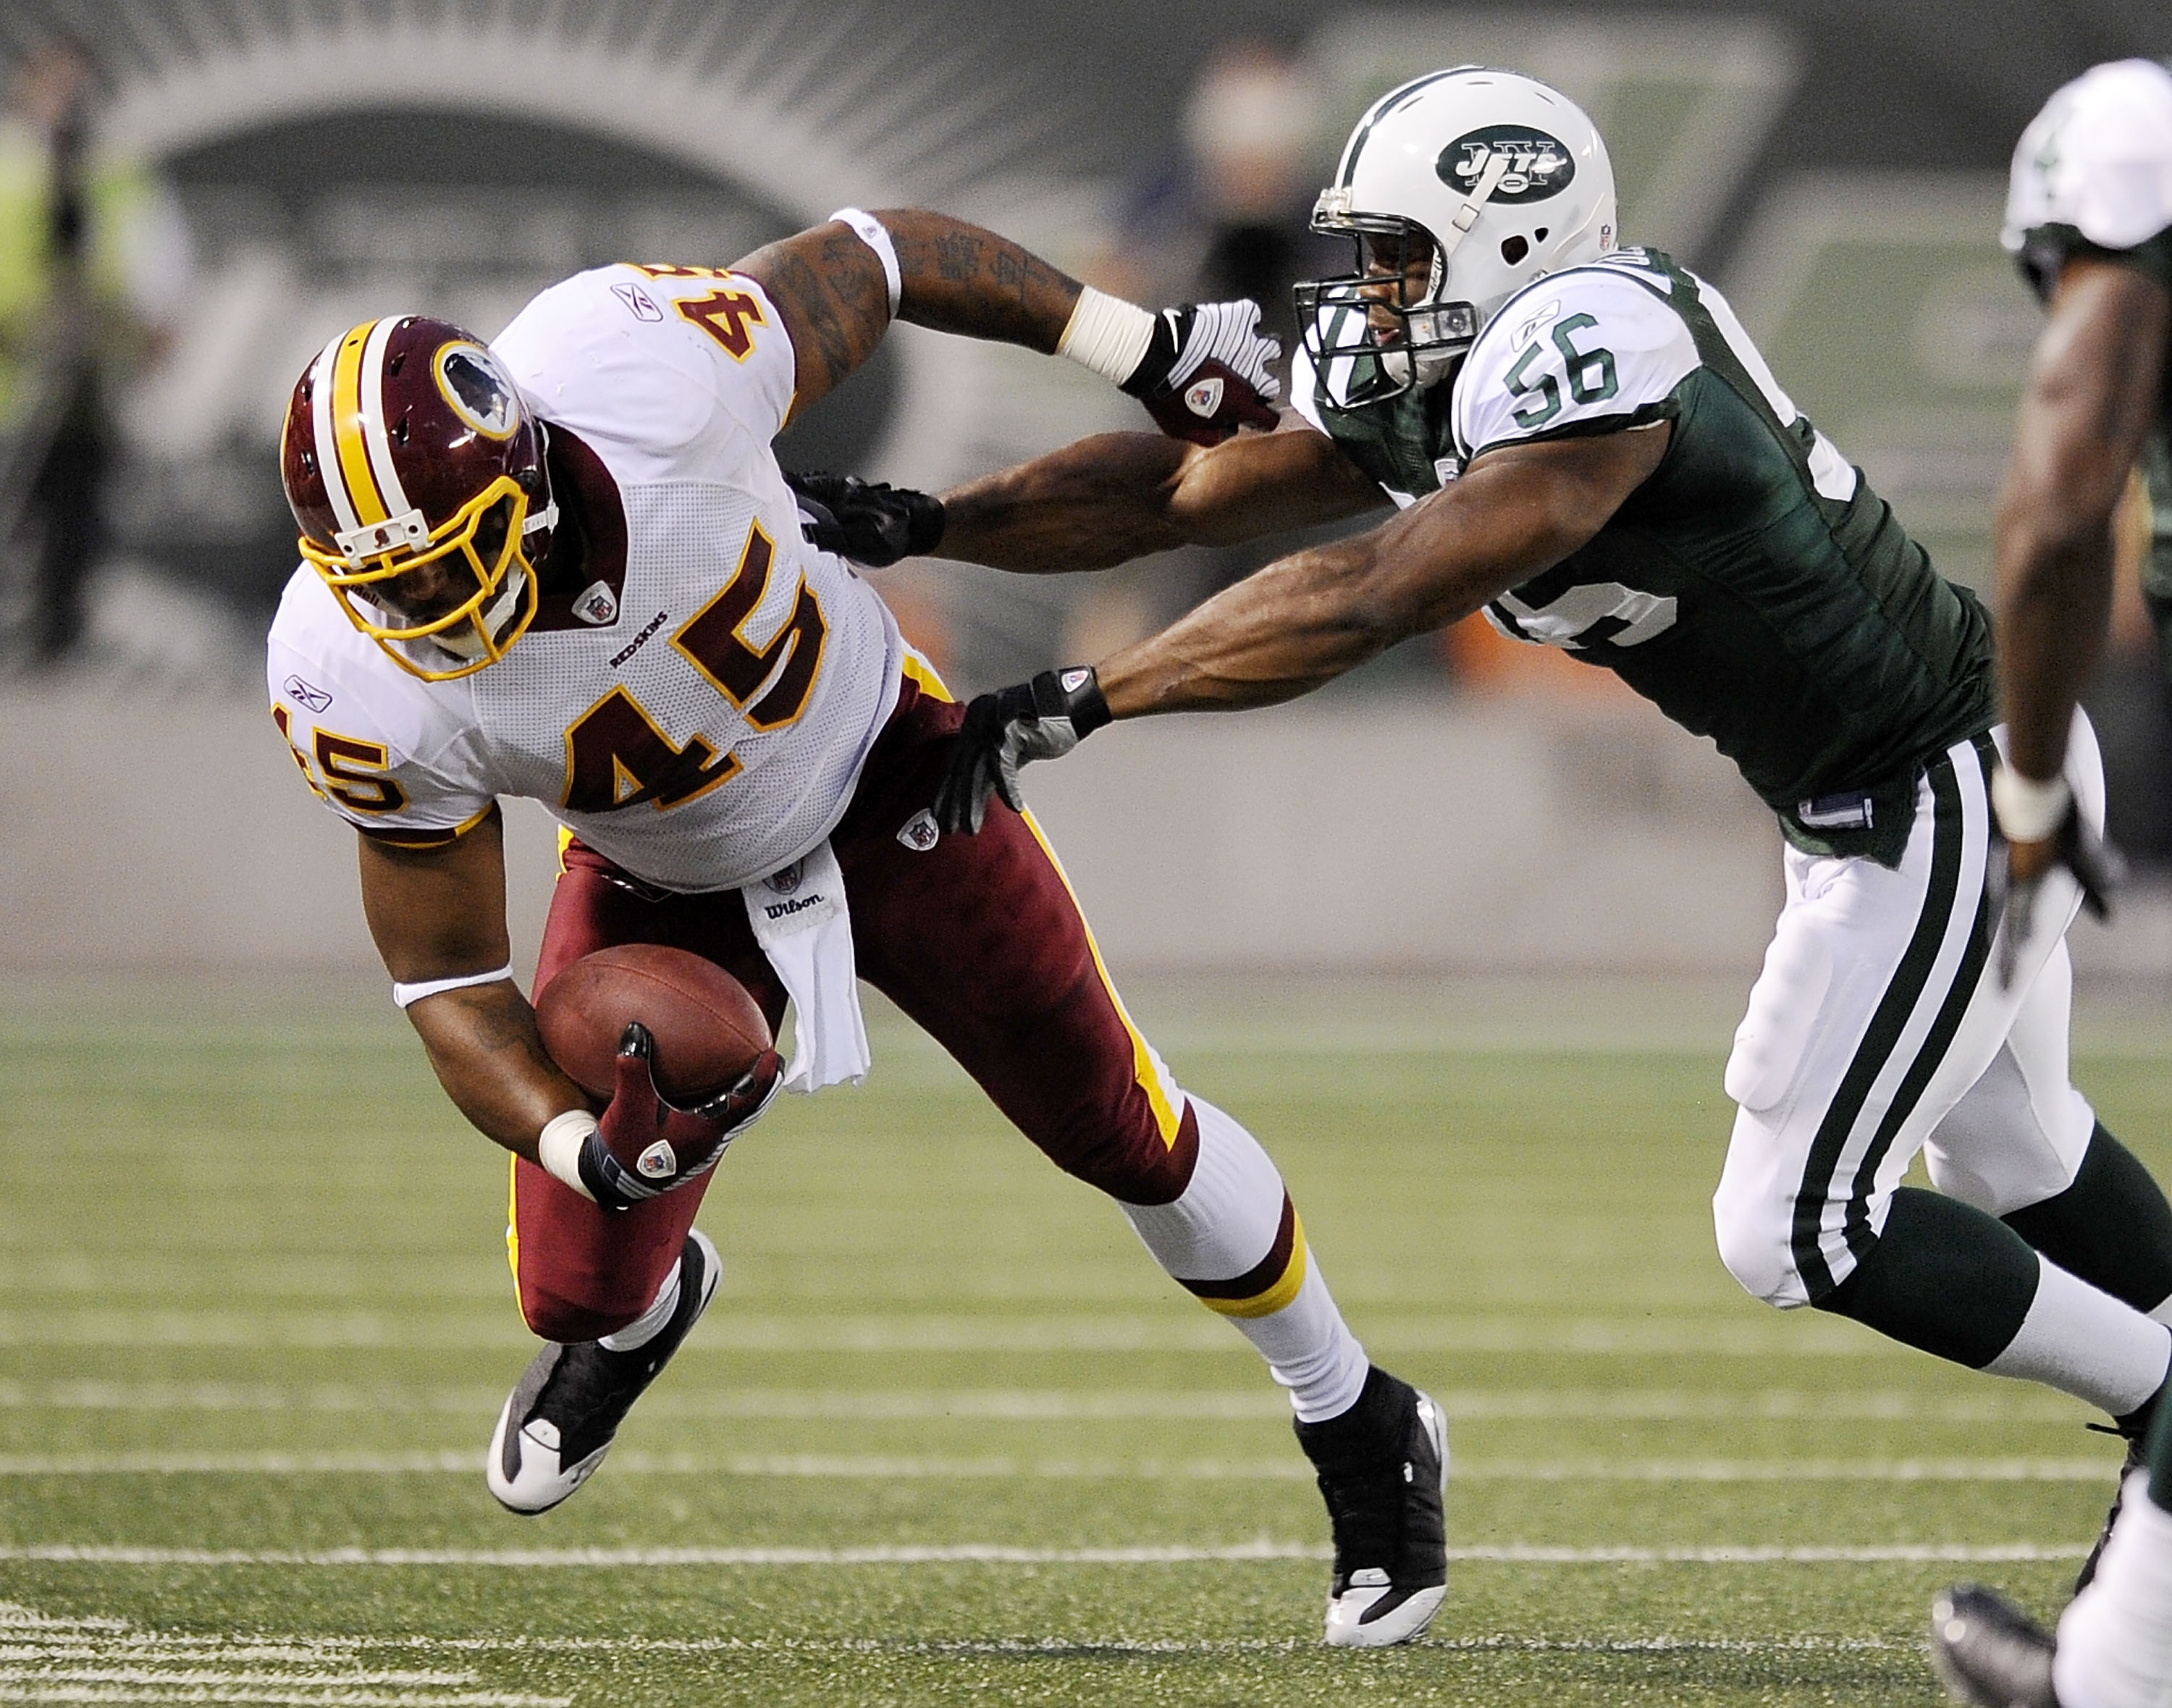 EAST RUTHERFORD, NJ - AUGUST 16:  Vernon Gholston #56 of the New York Jets  takes down Mike Sellers #45 of the Washington Redskins in a pre-season NFL game at Giants Stadium, August 16, 2008 in East Rutherford, New Jersey.  (Photo by Jeff Zelevansky/Getty